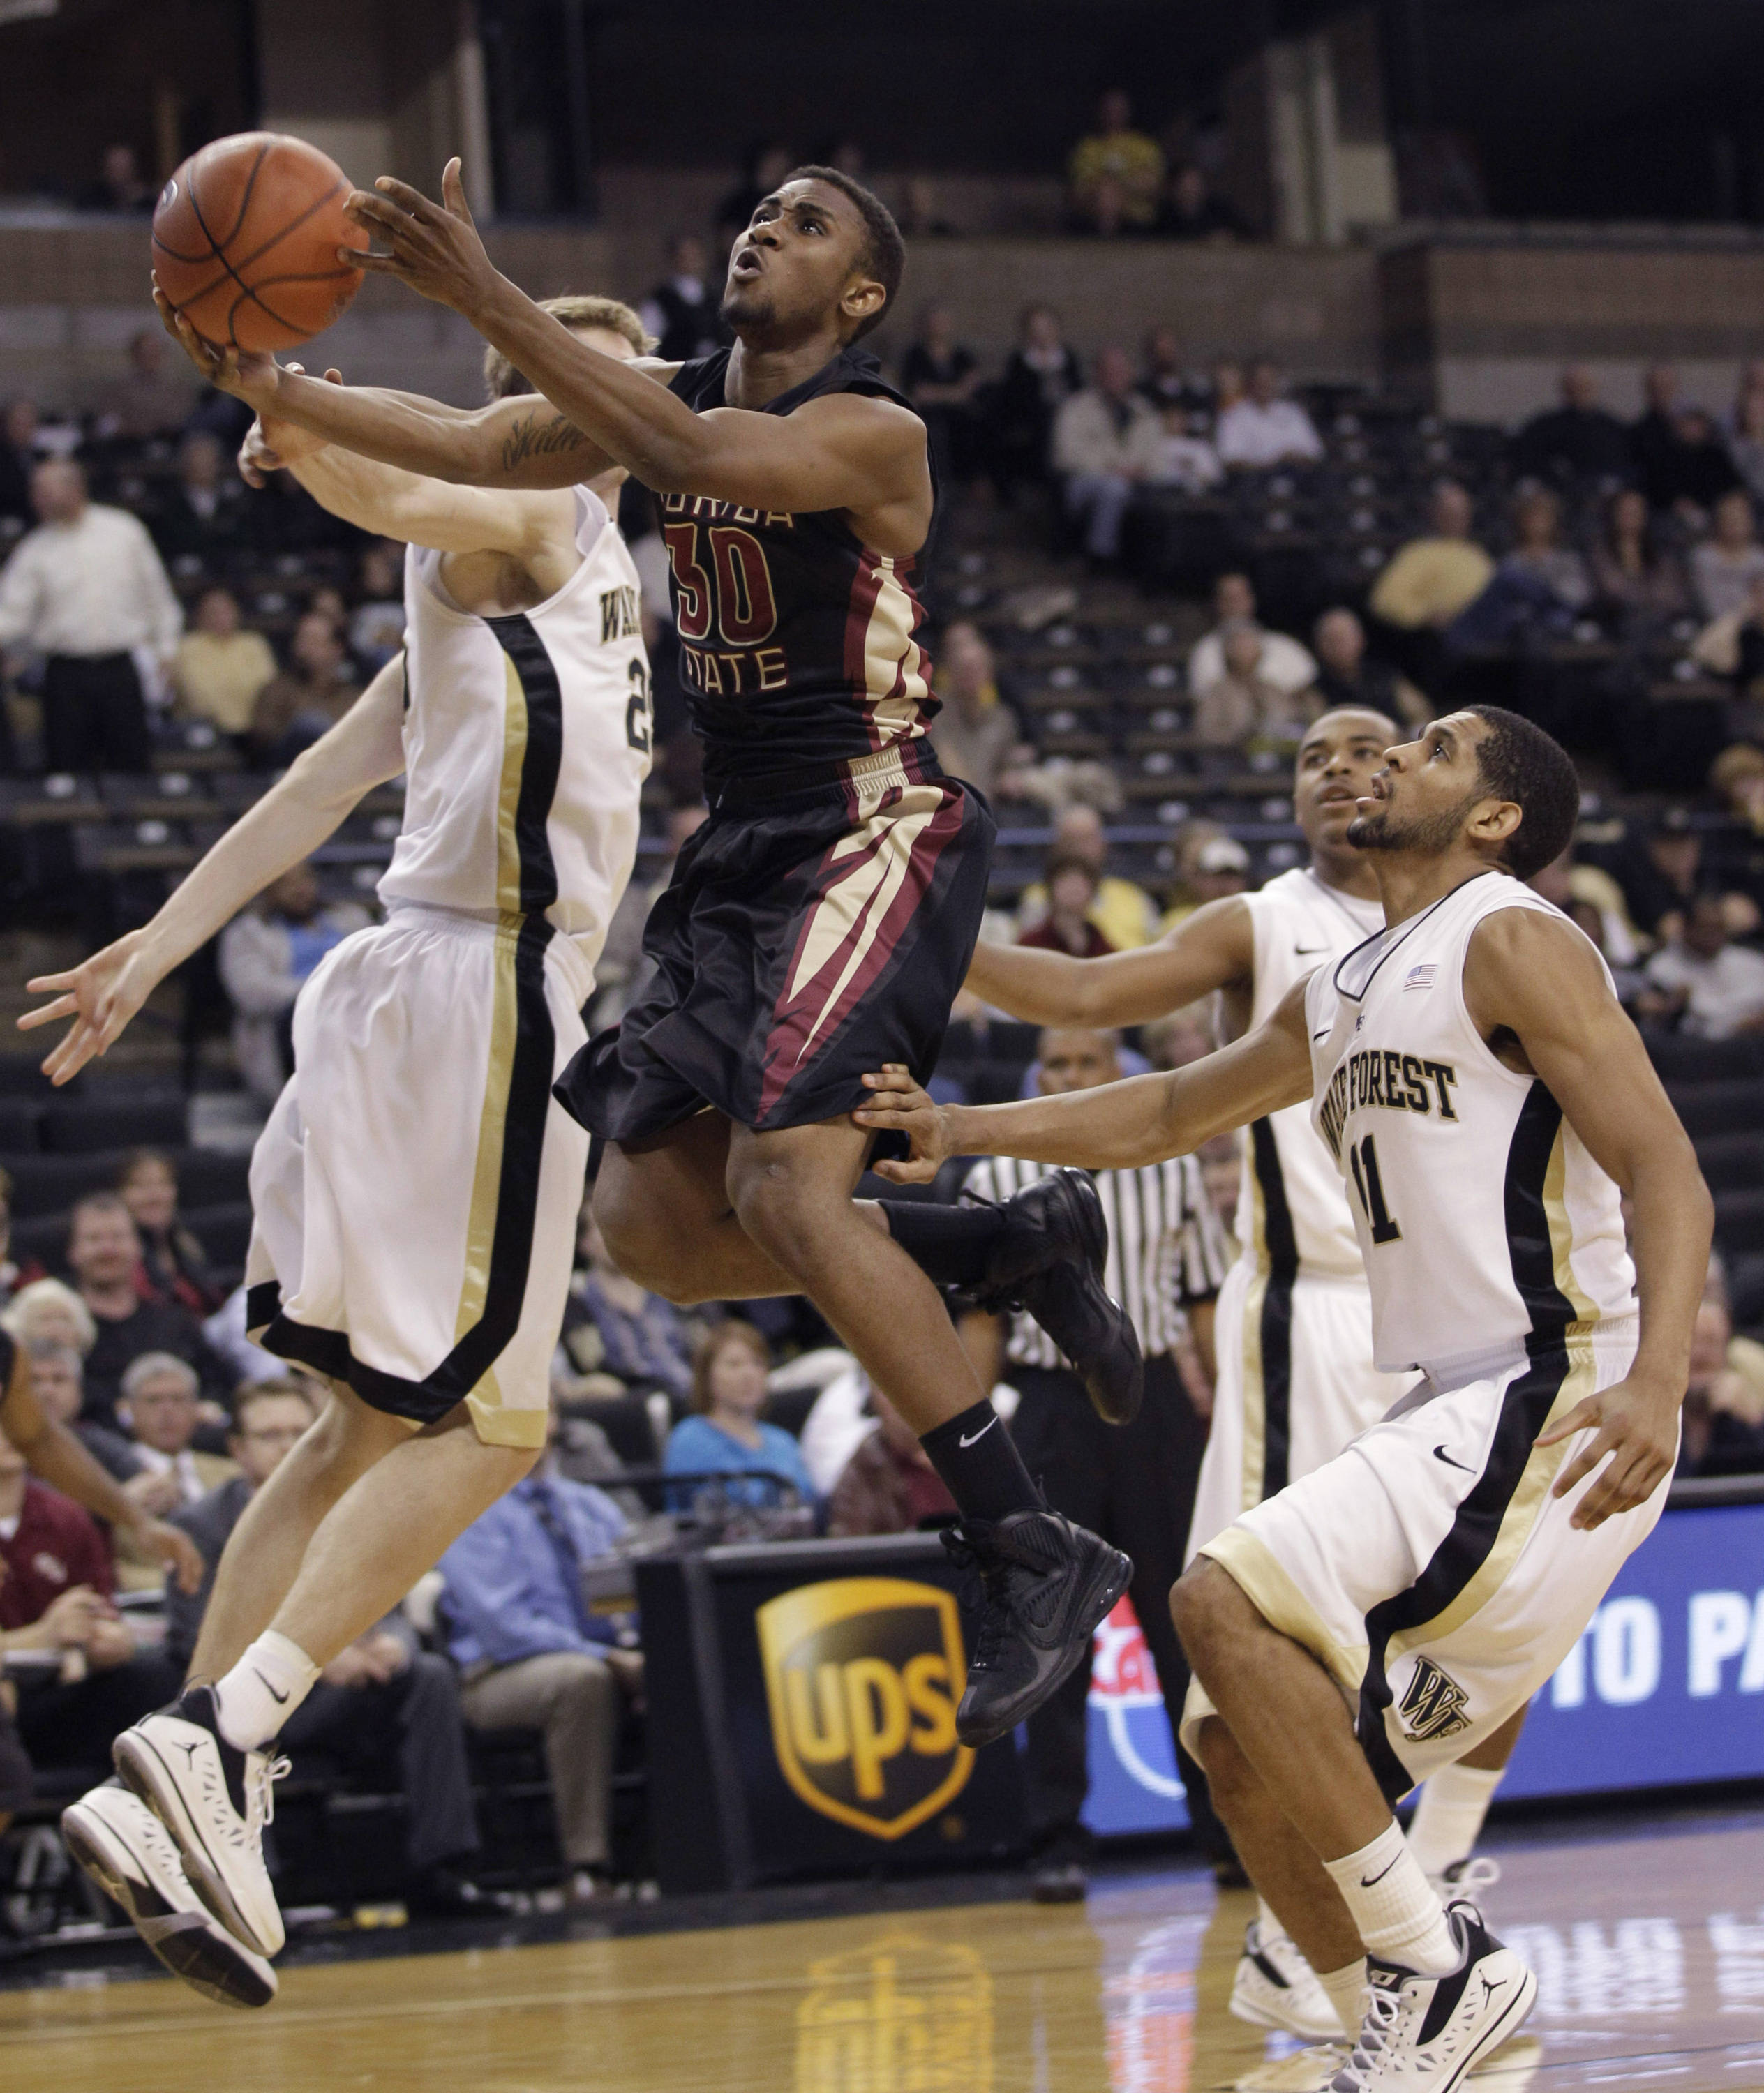 Florida State's Ian Miller drives past Wake Forest's C.J. Harris and Nikita Mescheriakov during the second half of Florida State's 75-52 win. (AP Photo/Chuck Burton)